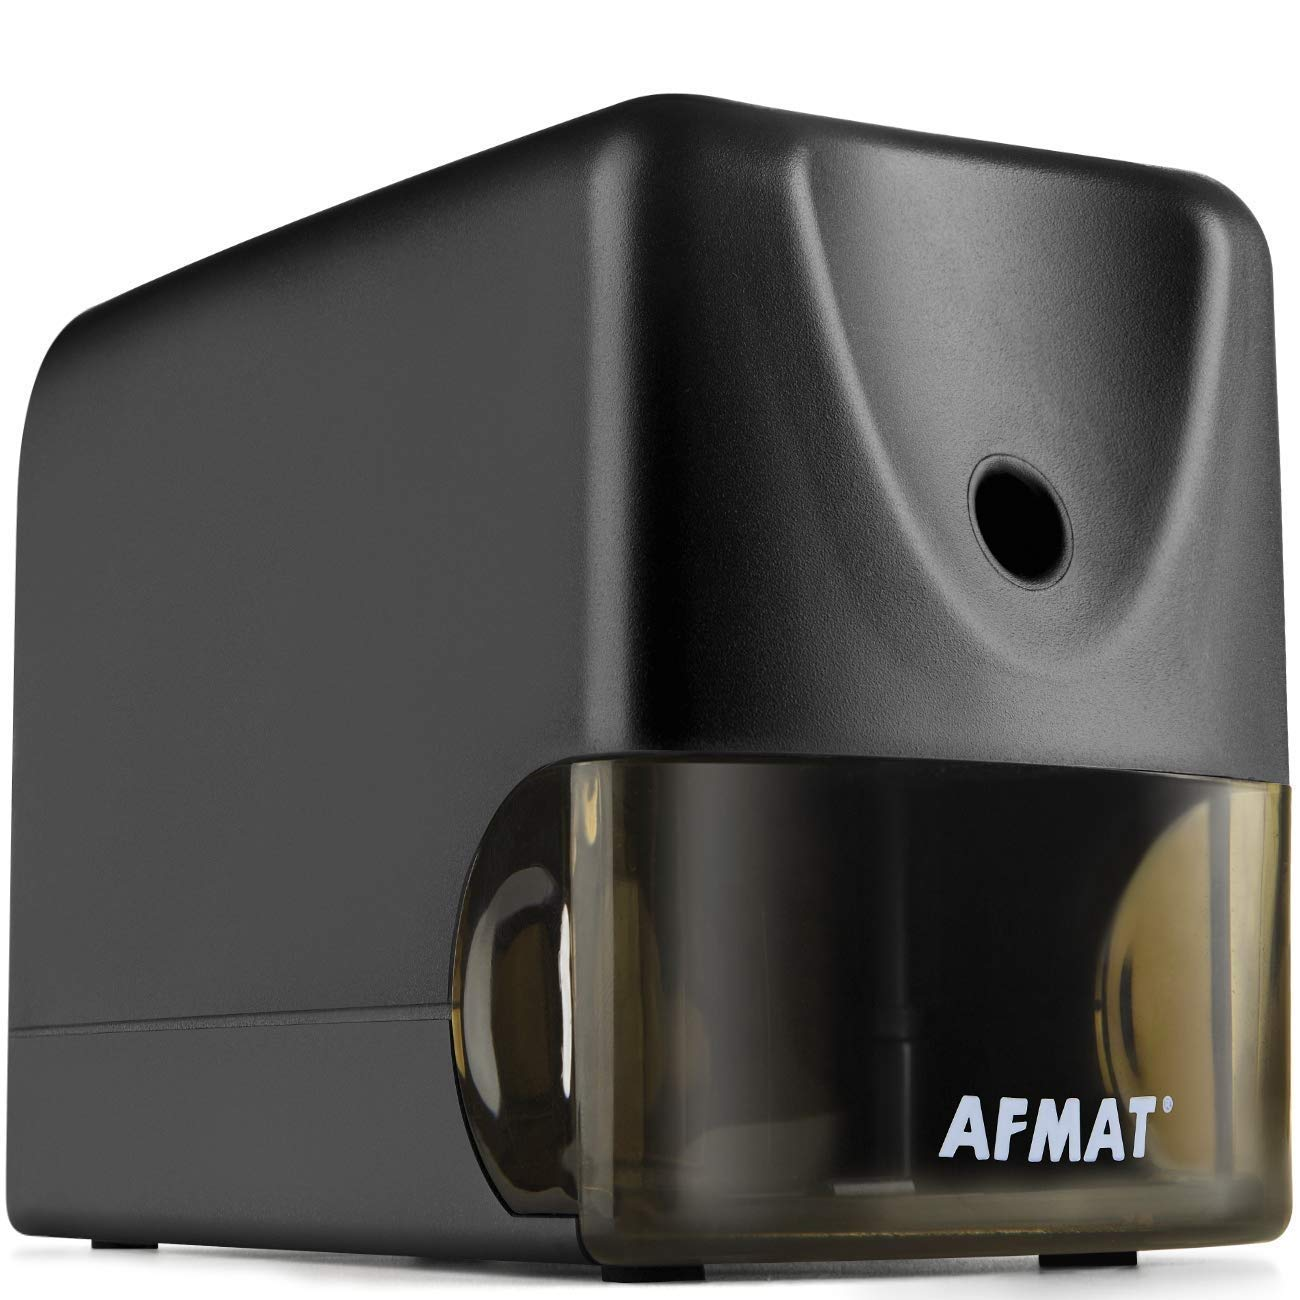 AFMAT Pencil Sharpener Heavy Duty, Electric Pencil Sharpener for Classroom, Industrial Pencil Sharpener, Fast Sharpen in 3s, Helical Pencil Sharpener Plug in for No.2/Colored Pencils,School,Office